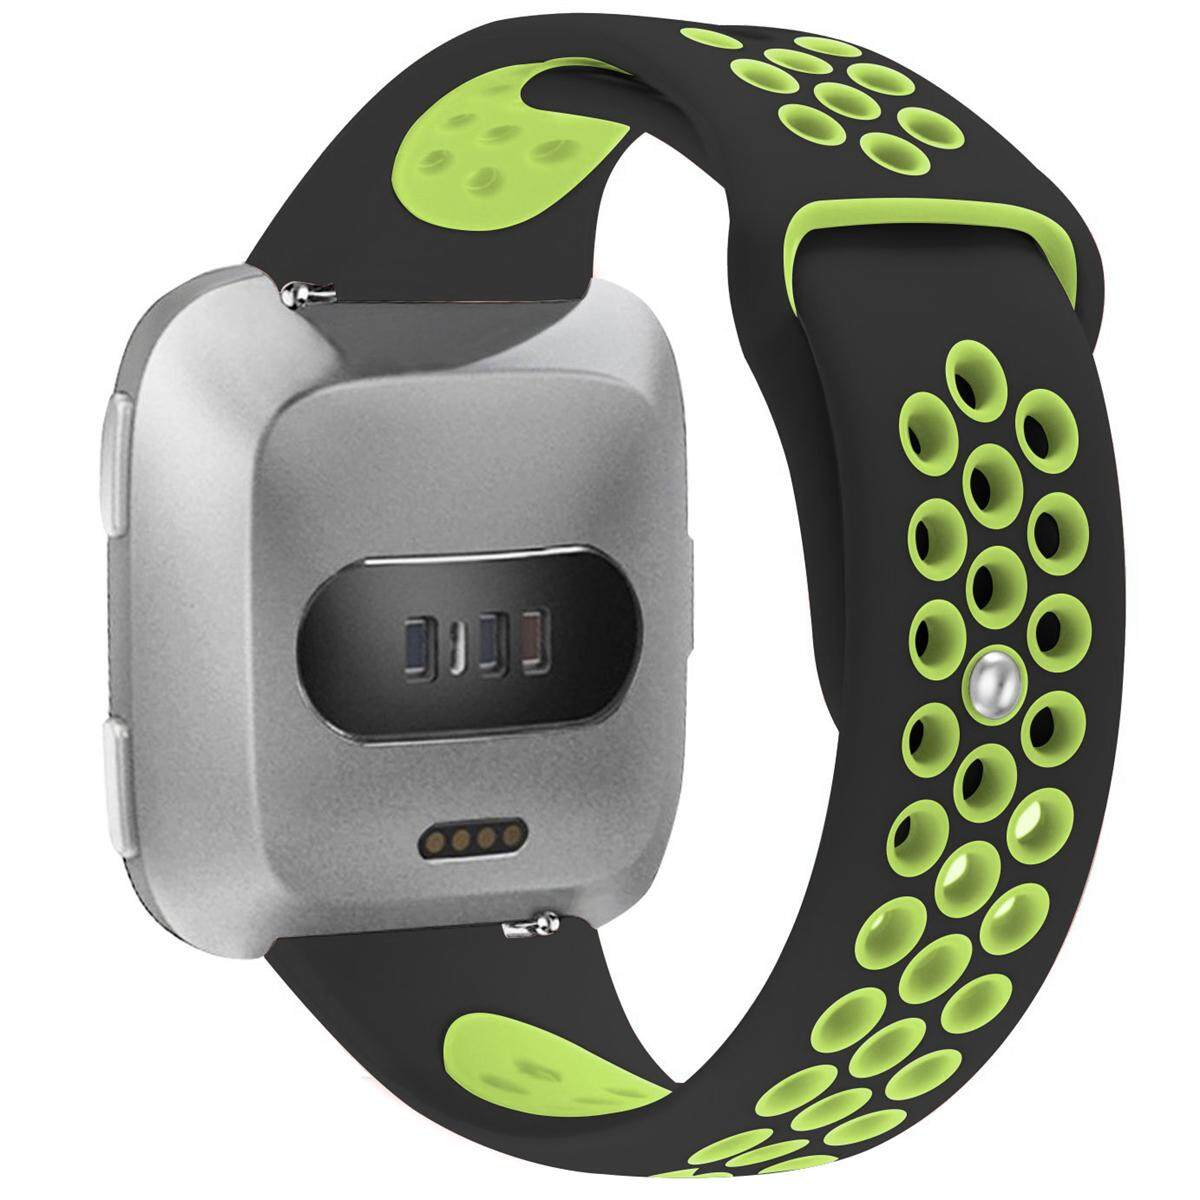 Fitness Smart Watch Silicone Strap Bands with Ventilation Holes For Fitbit Versa Black and Green -